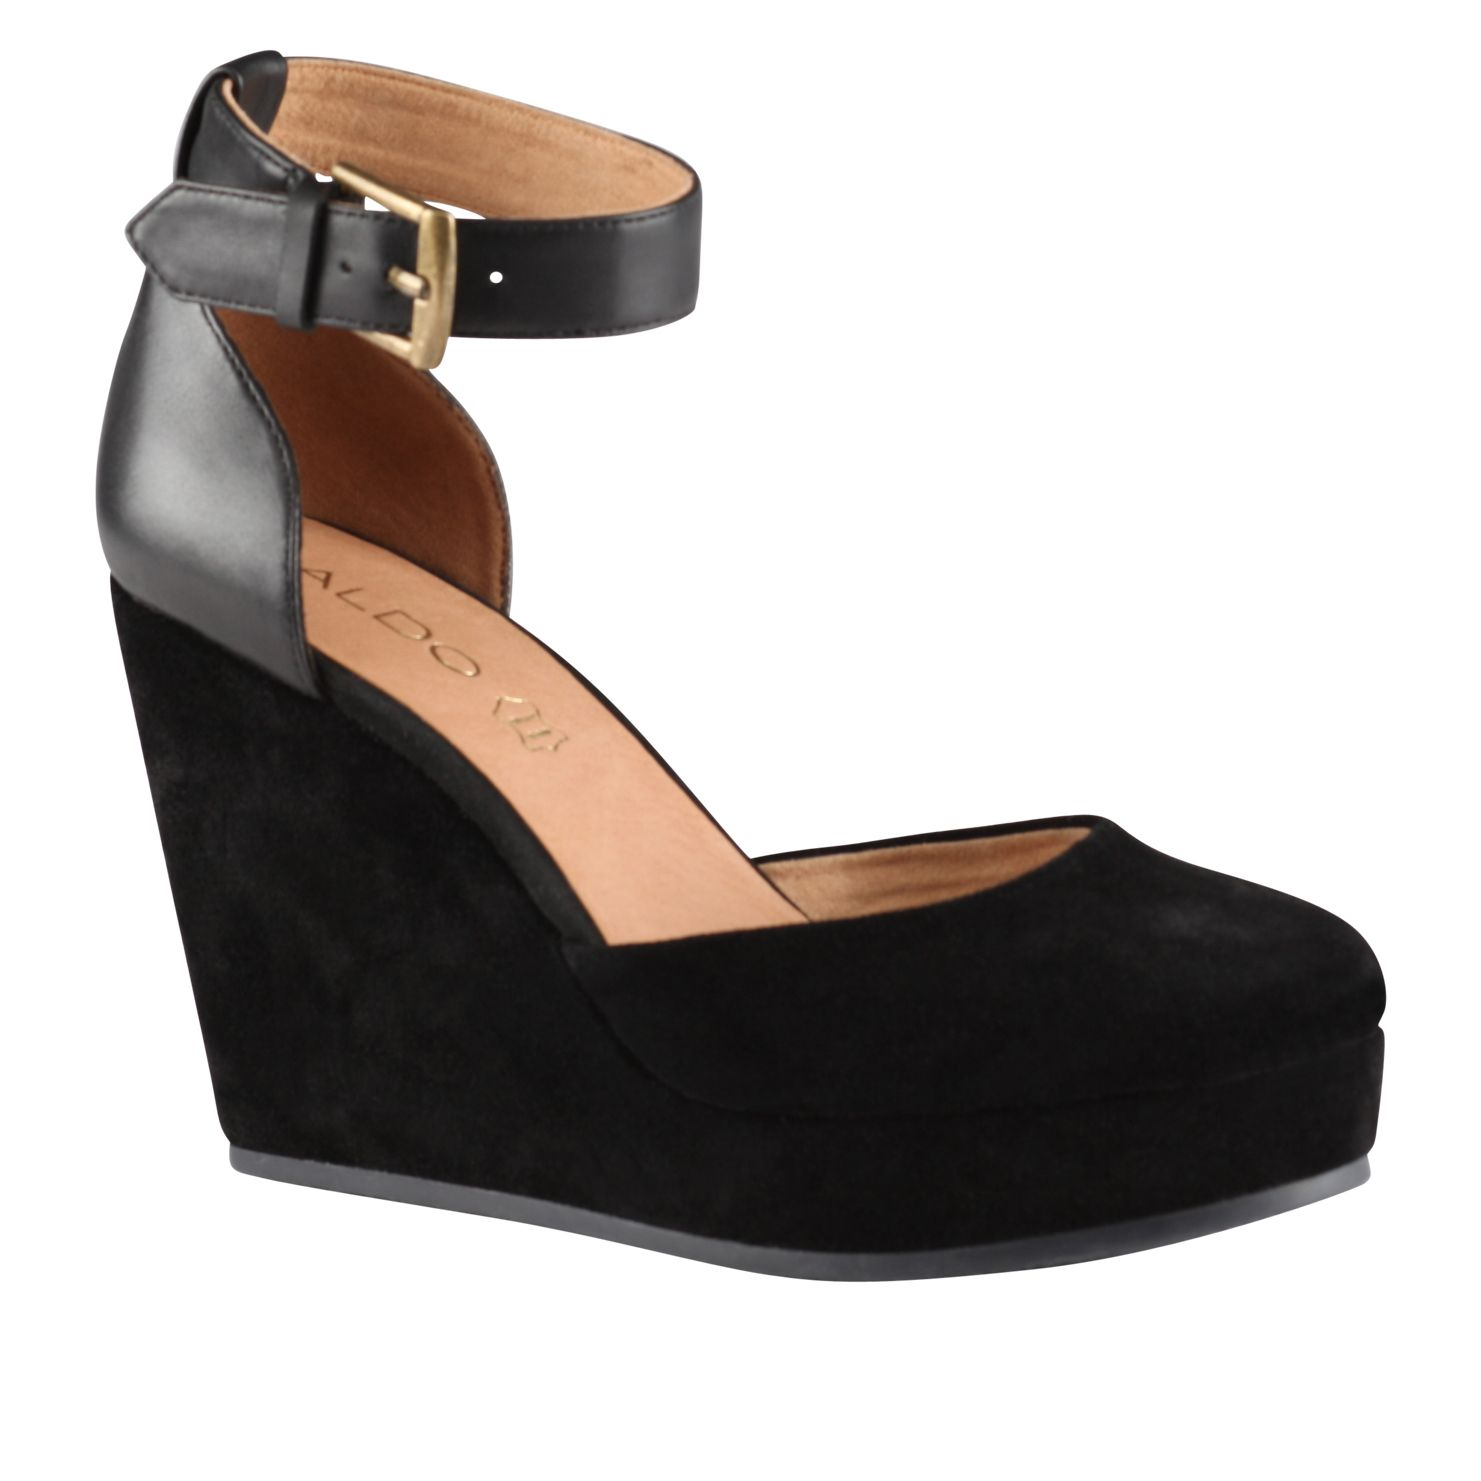 Trelli almond toe wedge shoes